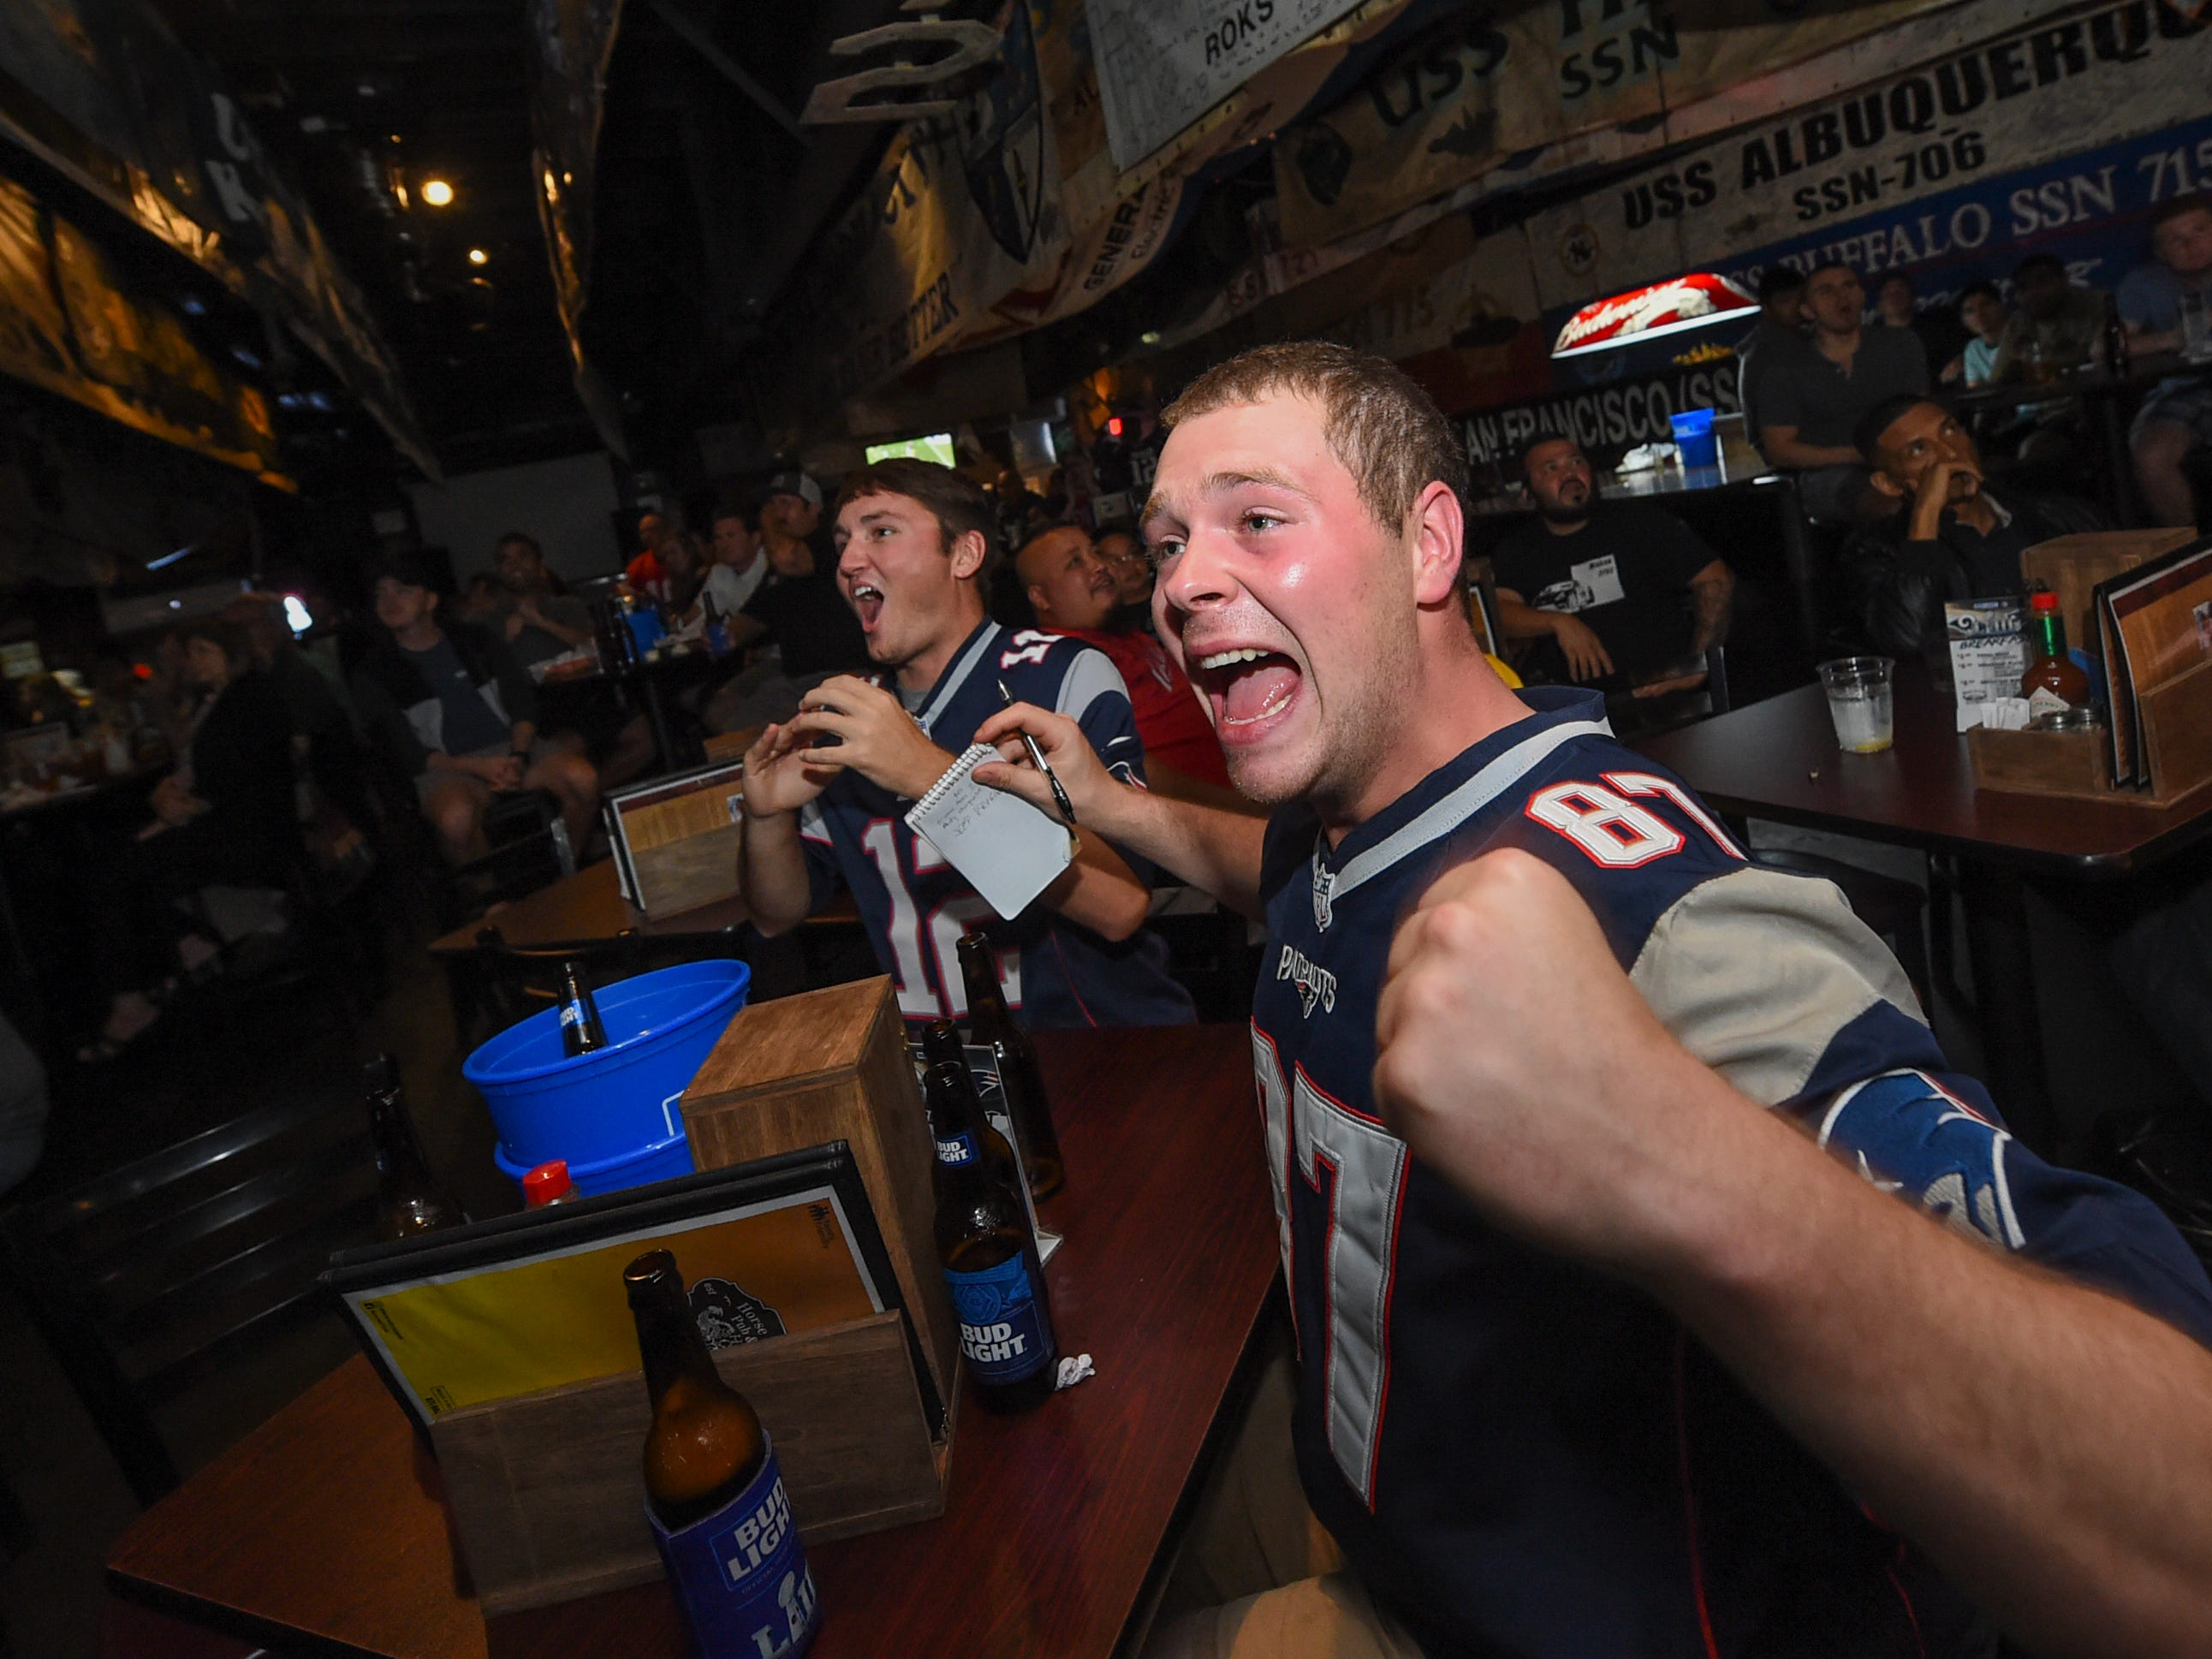 New England Patriots fans Jeff Kroeber, right, and Mike Bonafilia react to a play during a Horse and Cow Superbowl 53 party in Tamuning, Feb. 4, 2019.